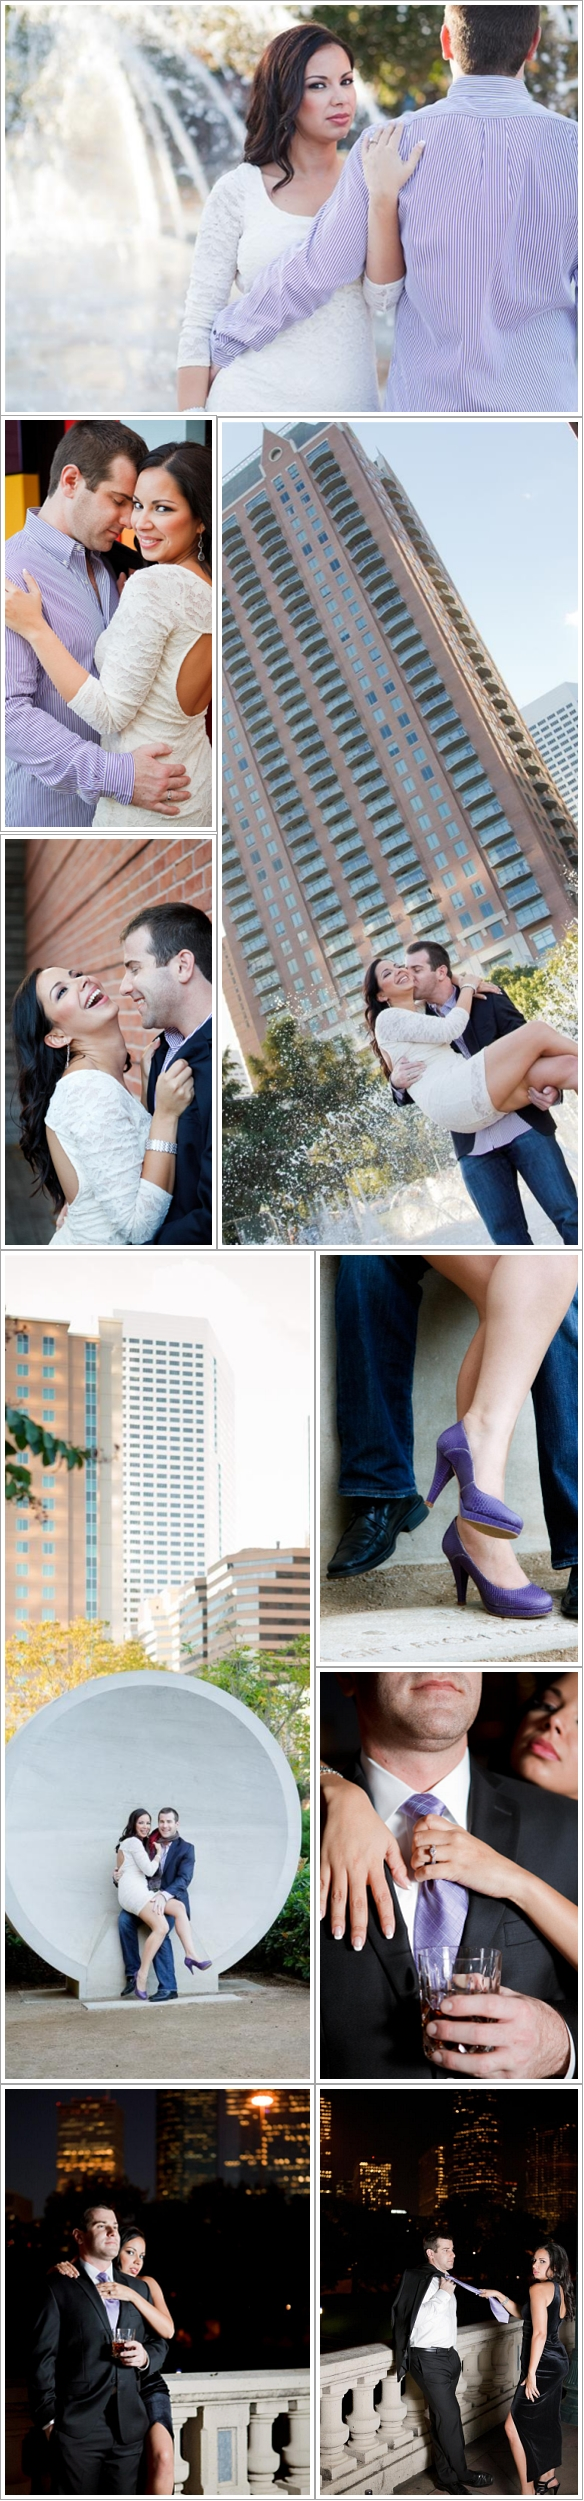 C. Baron Photography, Houston's Best Engagement Photographer, Discovery Green, Urban, downtown, skyline, night session, Buffalo Bayou, Sabine Street, black tie, park